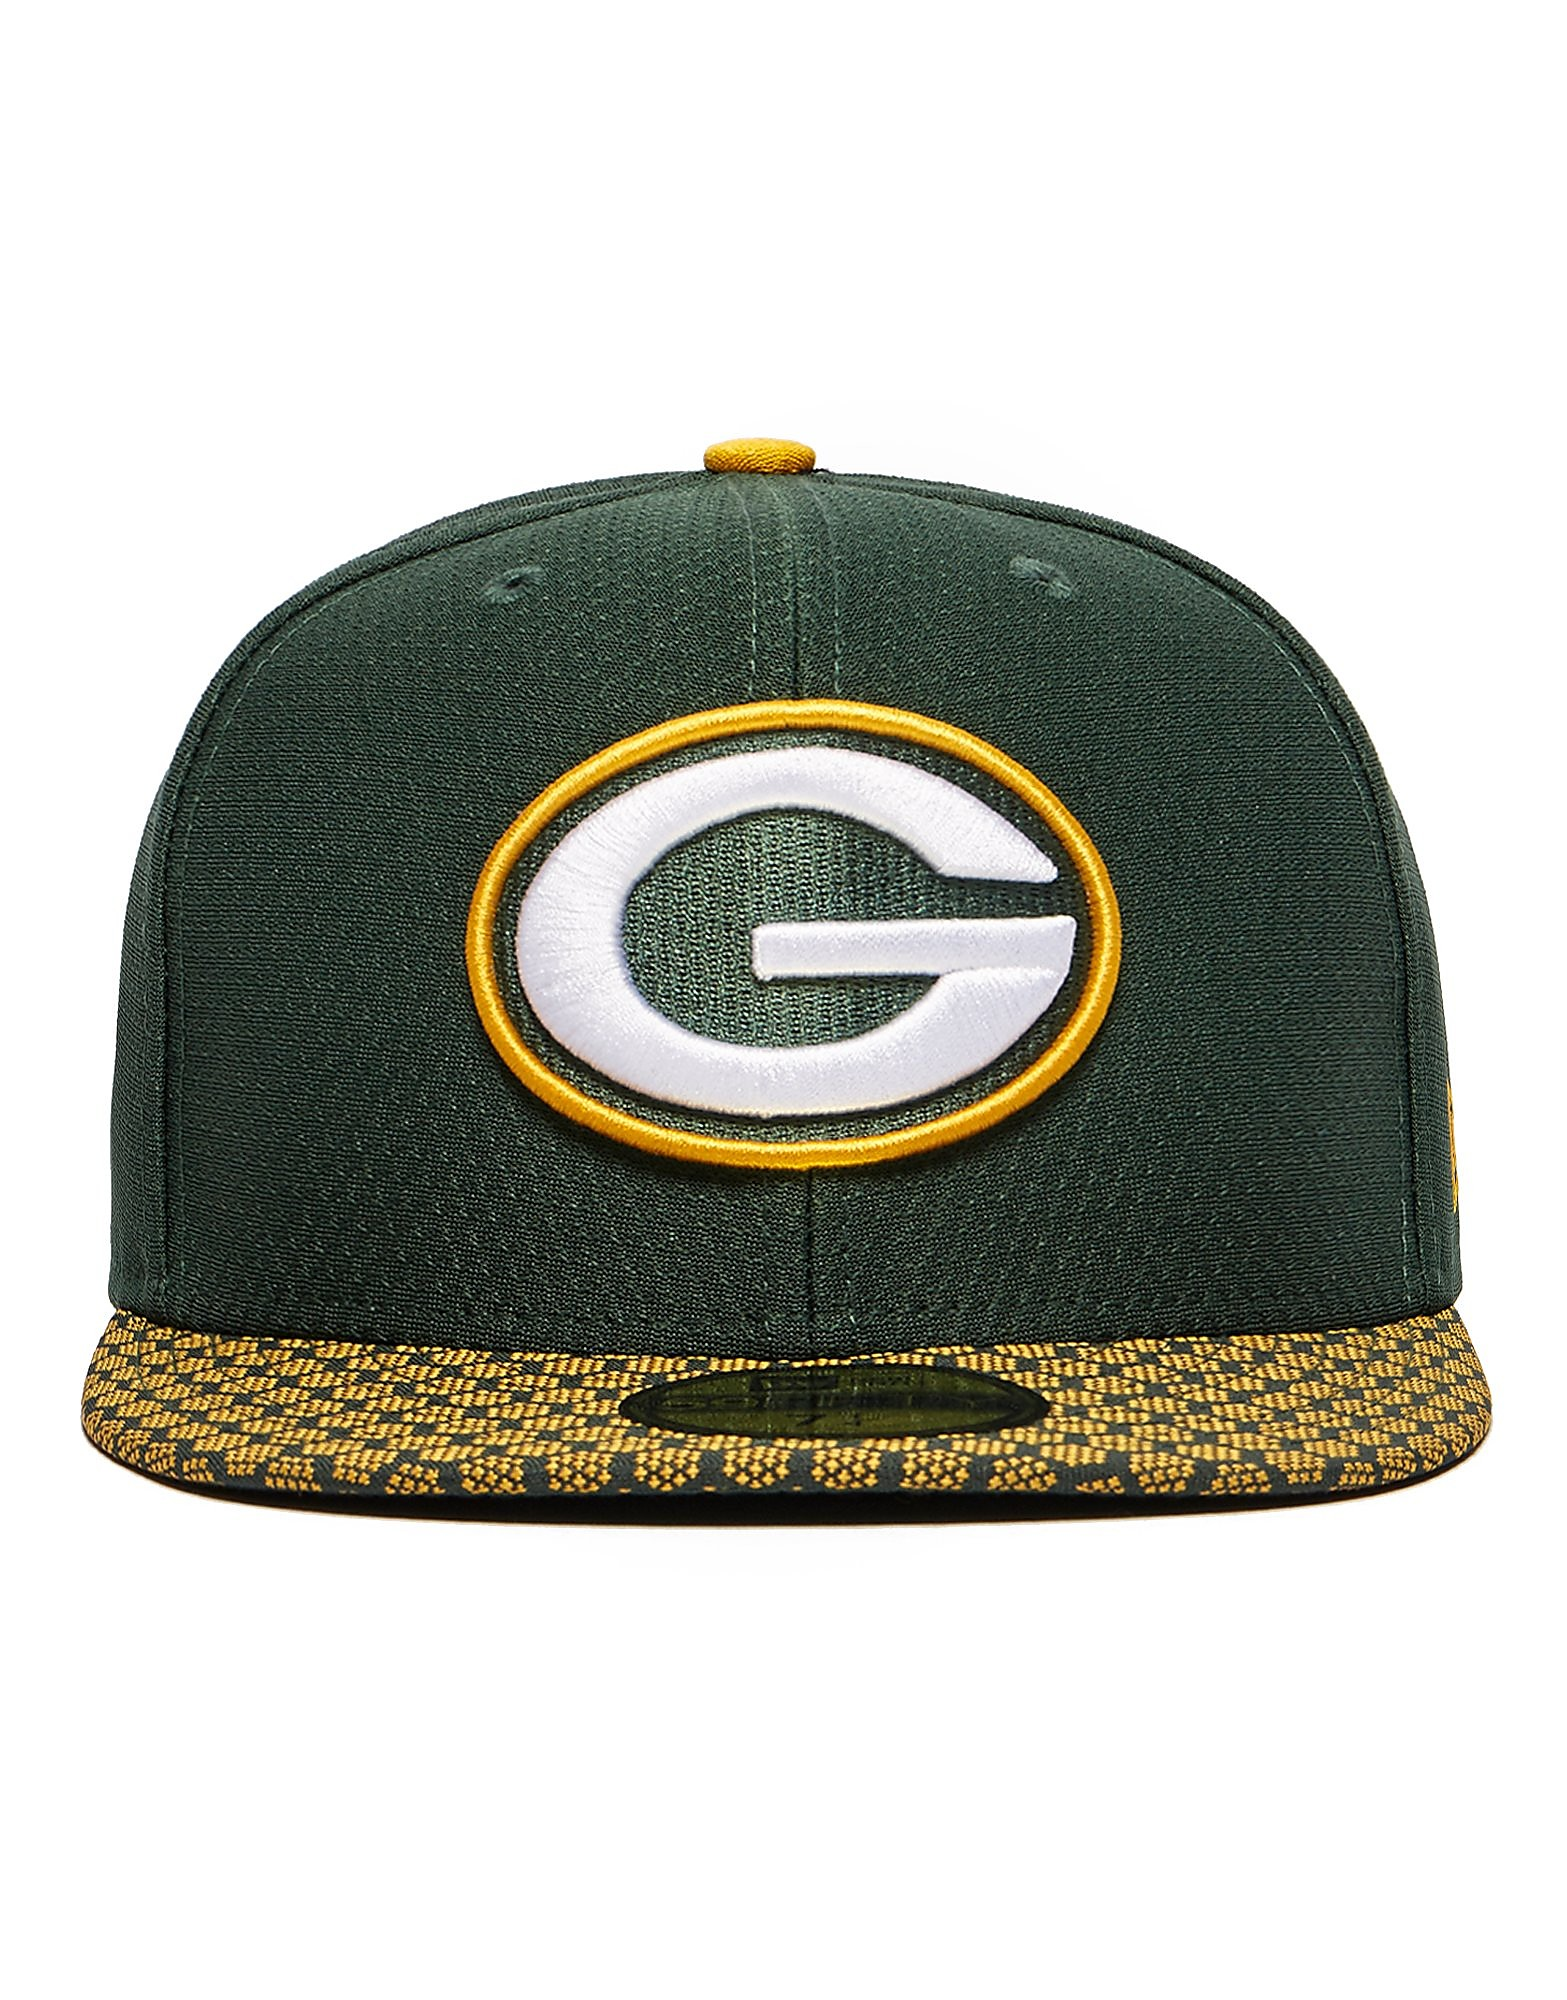 New Era NFL Green Bay Packers 59Fifty Cap